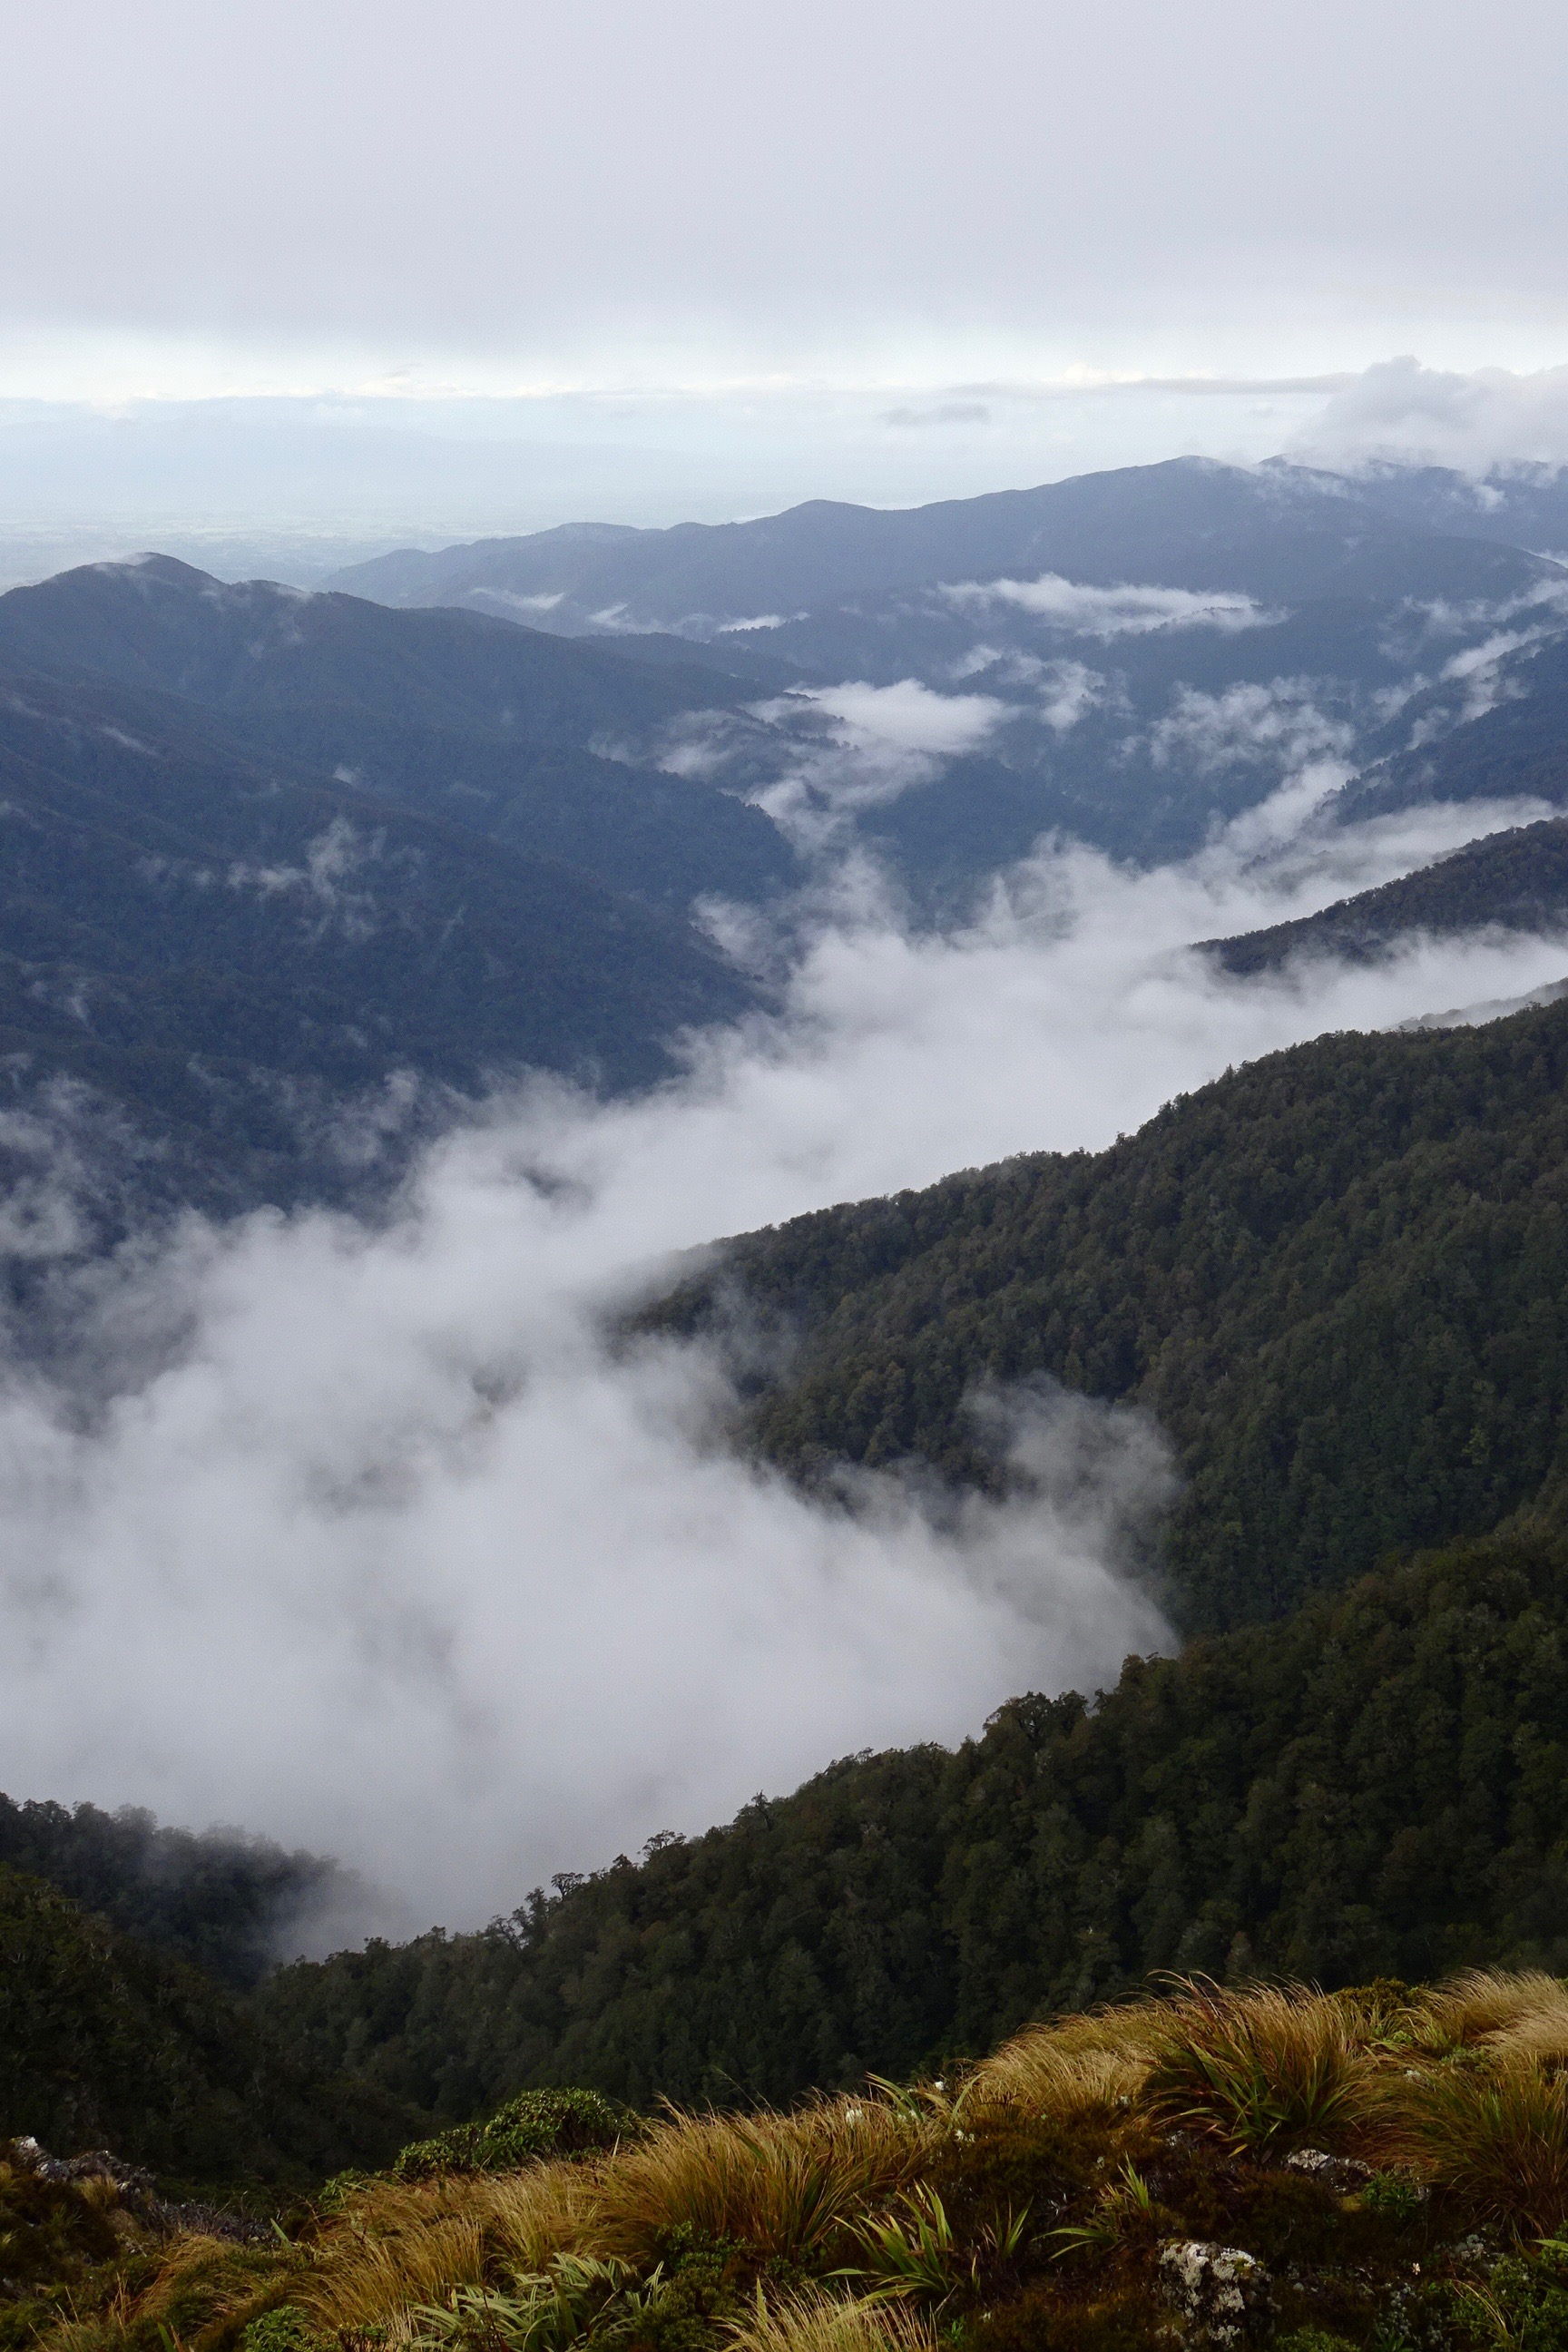 Cloudy valleys - The view from Powell Hut